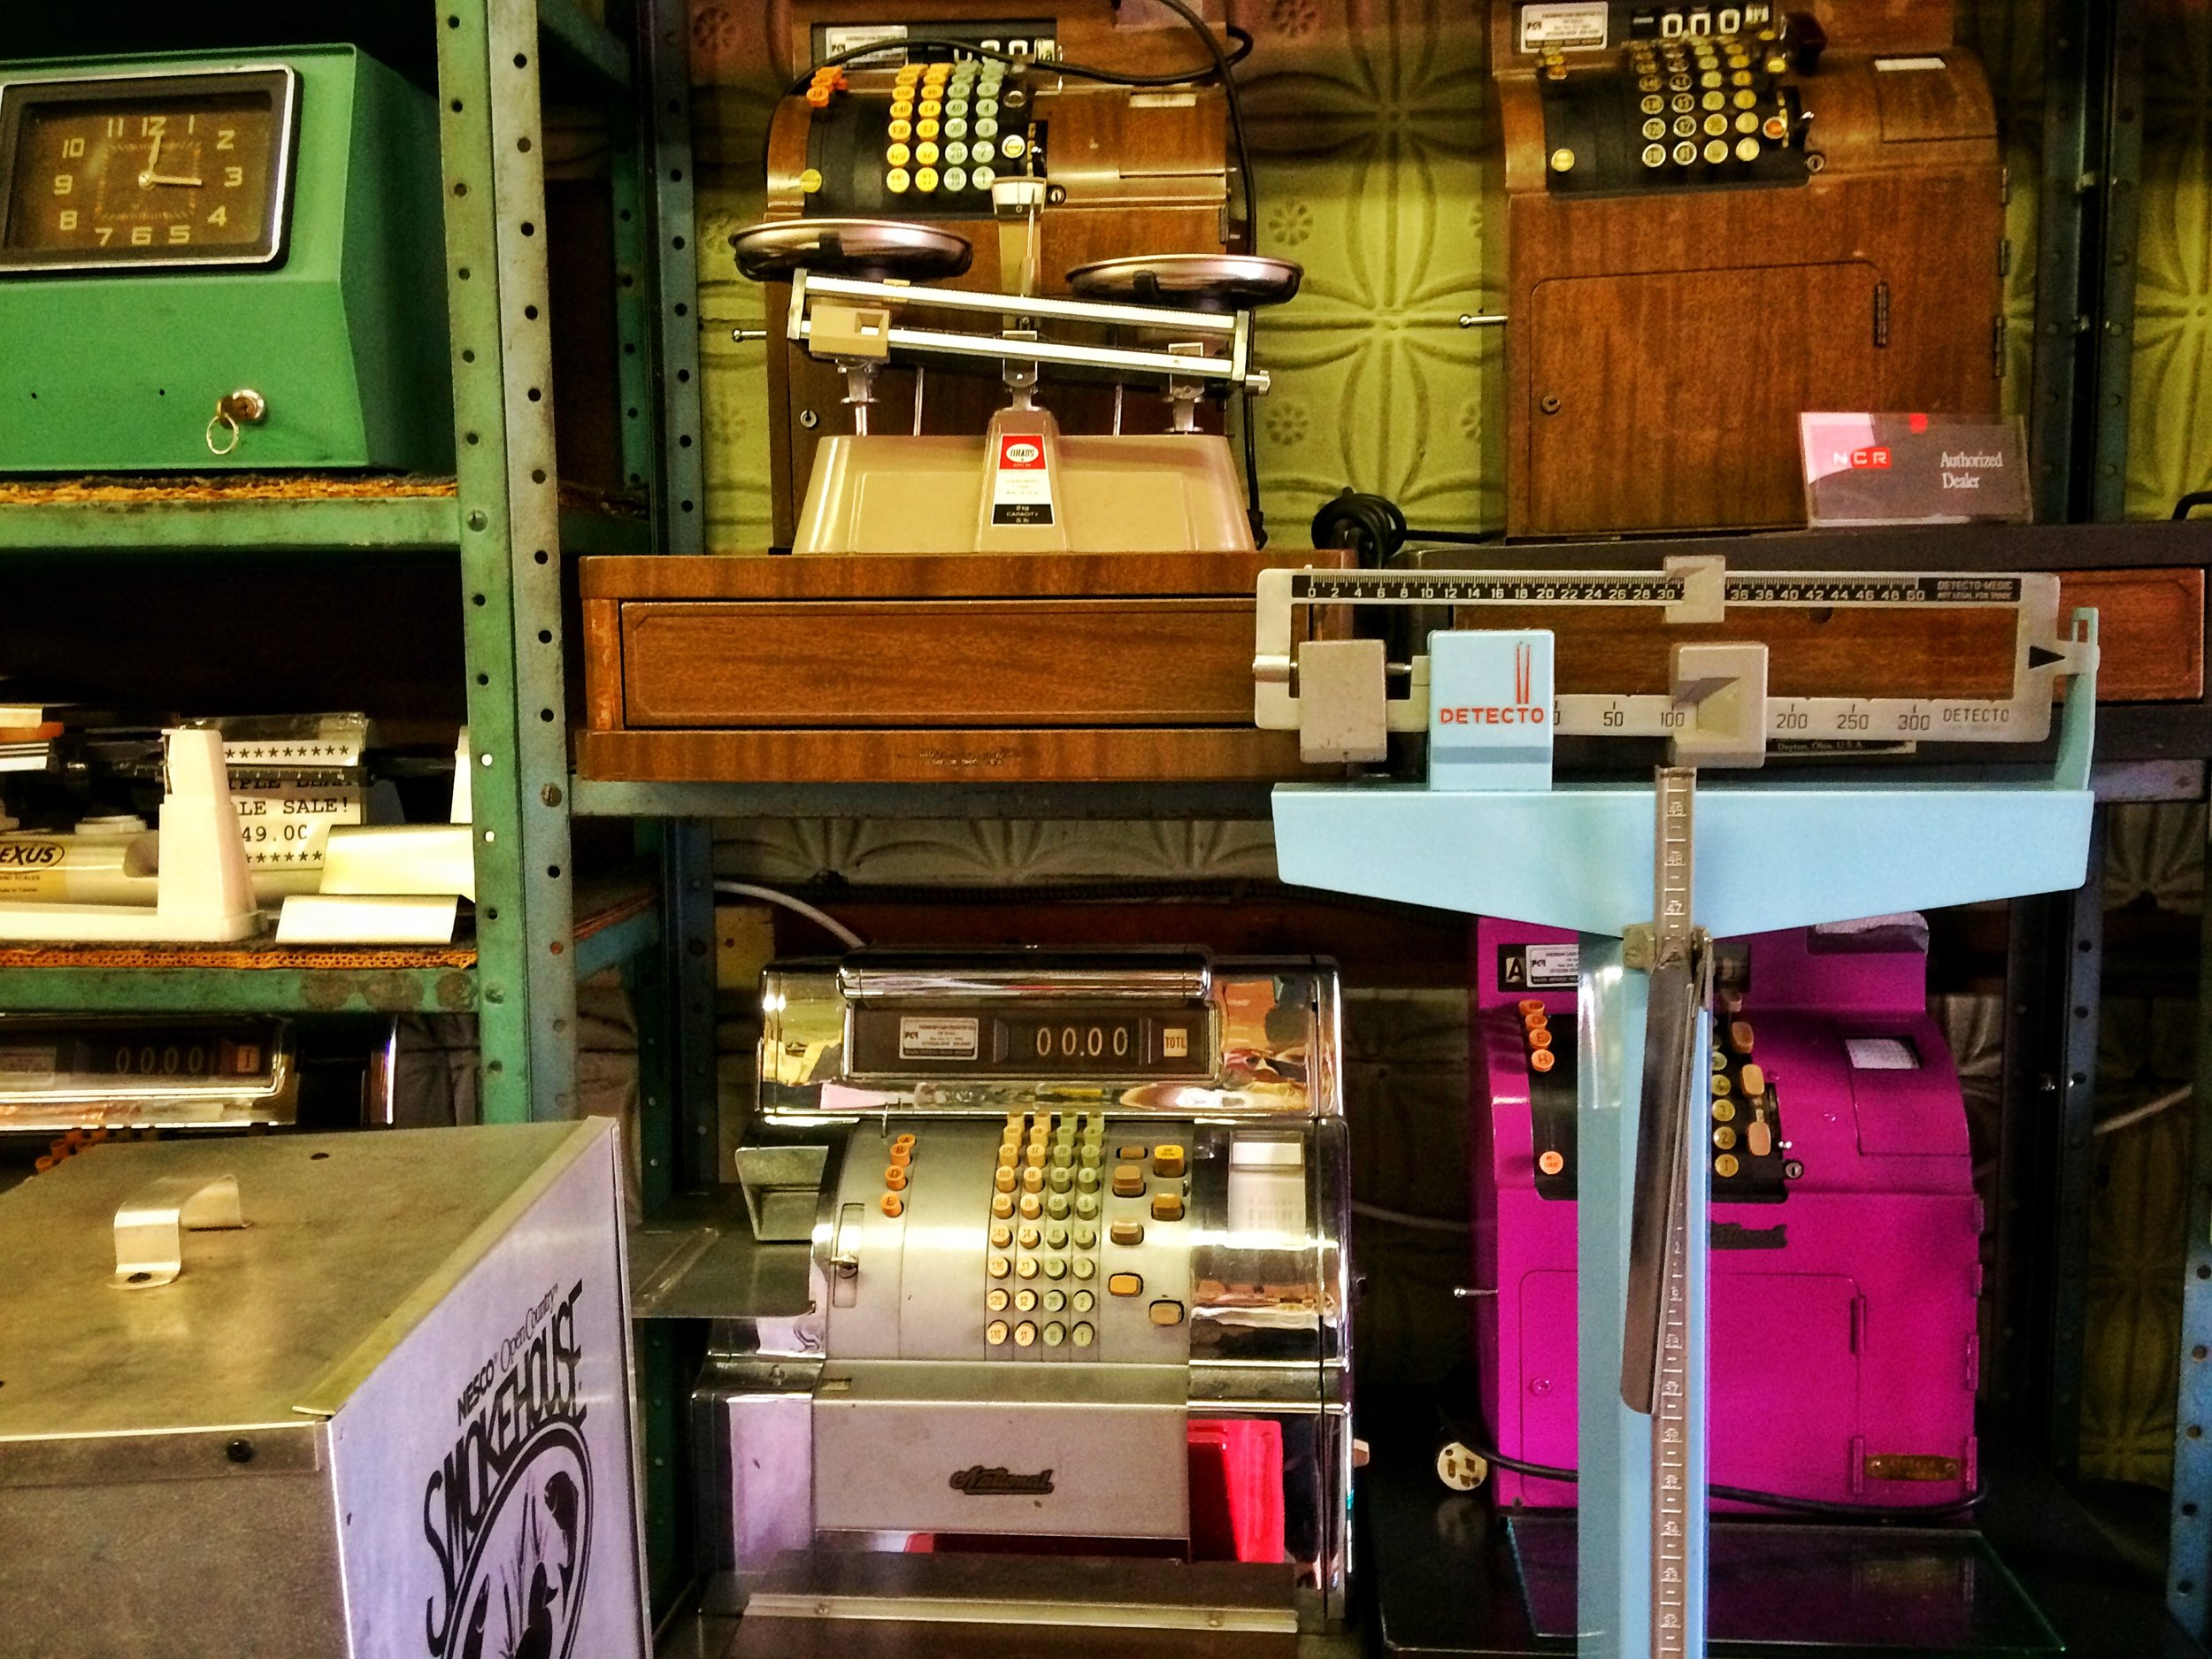 Scales, registers, and wares at Faerman Cash Register Co. Photo credit P. Peterson